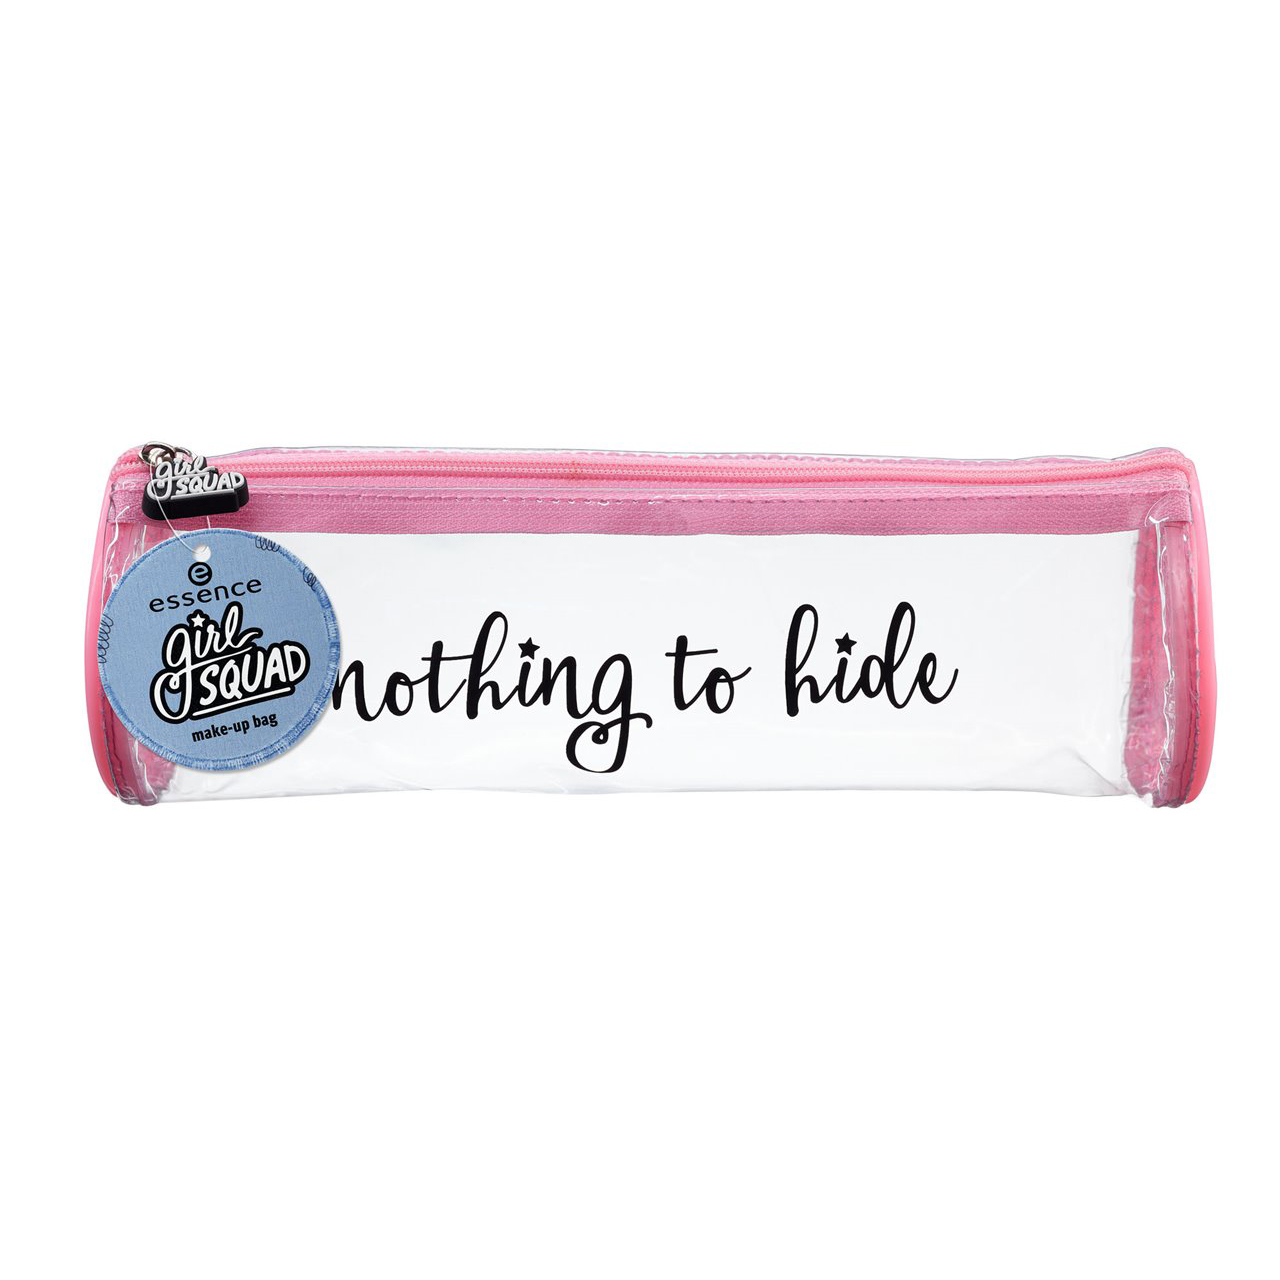 Essence Girl Squad Makeup Bag - 01 nothing to hide